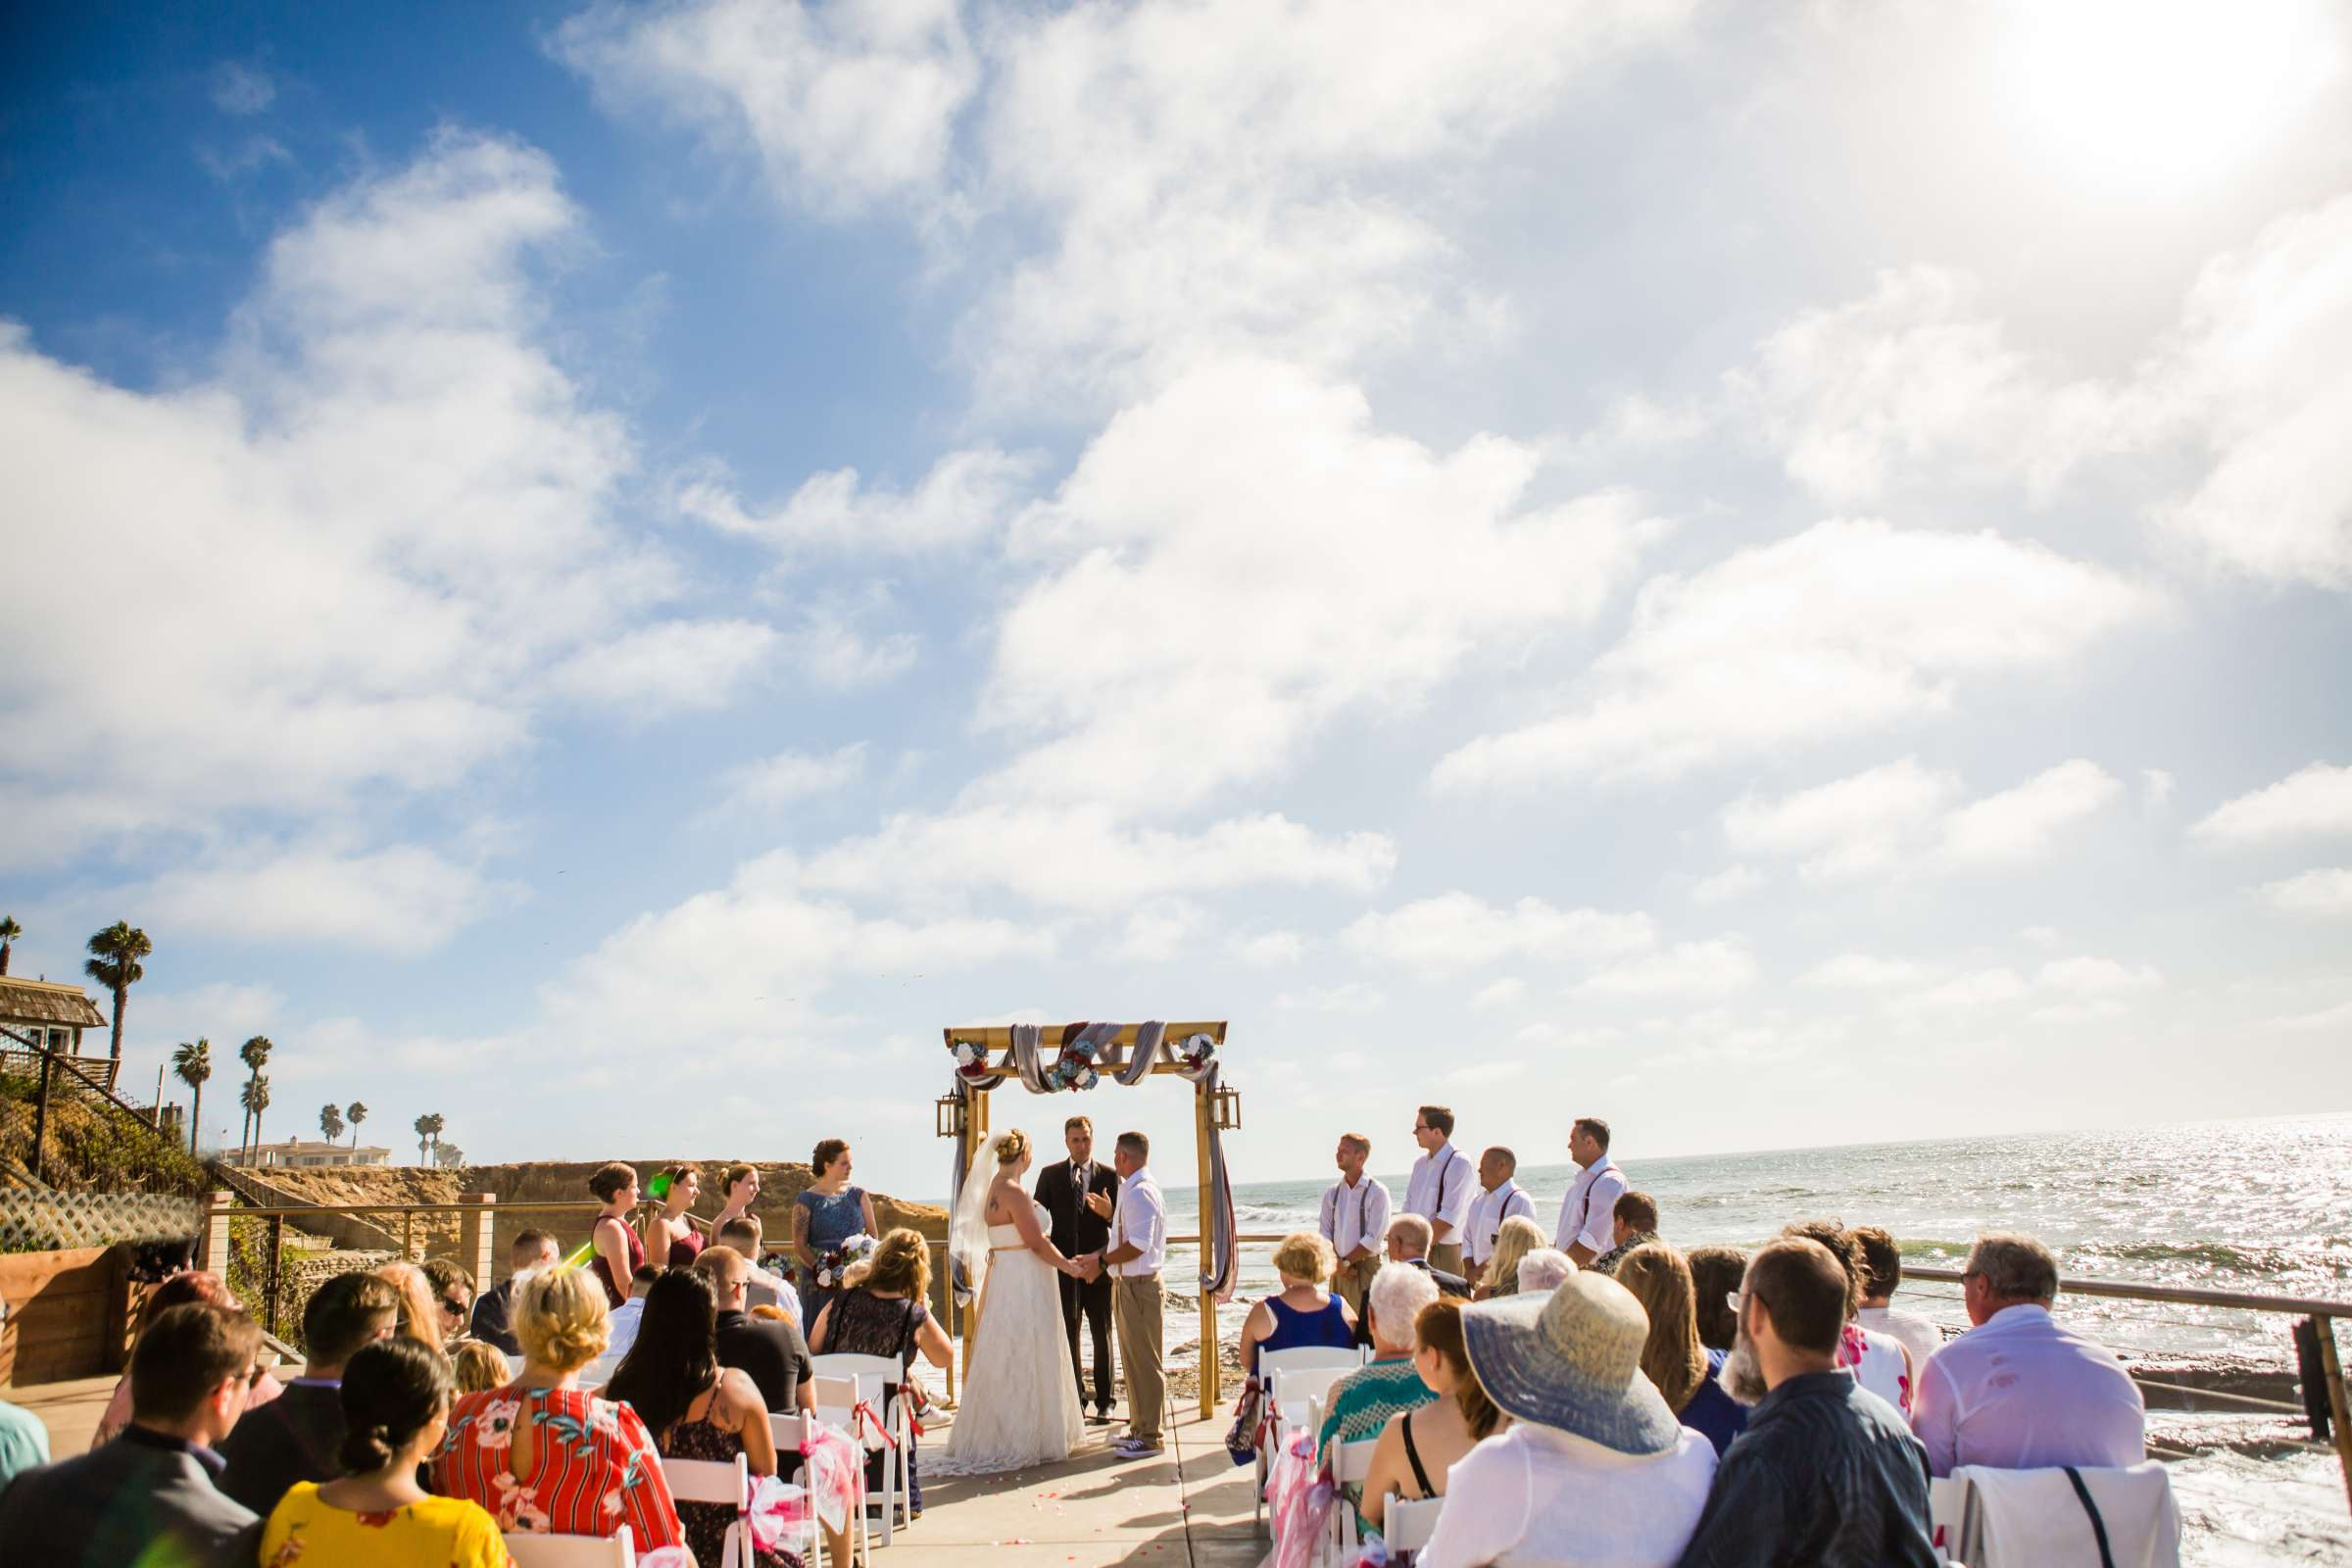 The Inn at Sunset Cliffs Wedding, Melinda and Benjamin Wedding Photo #57 by True Photography